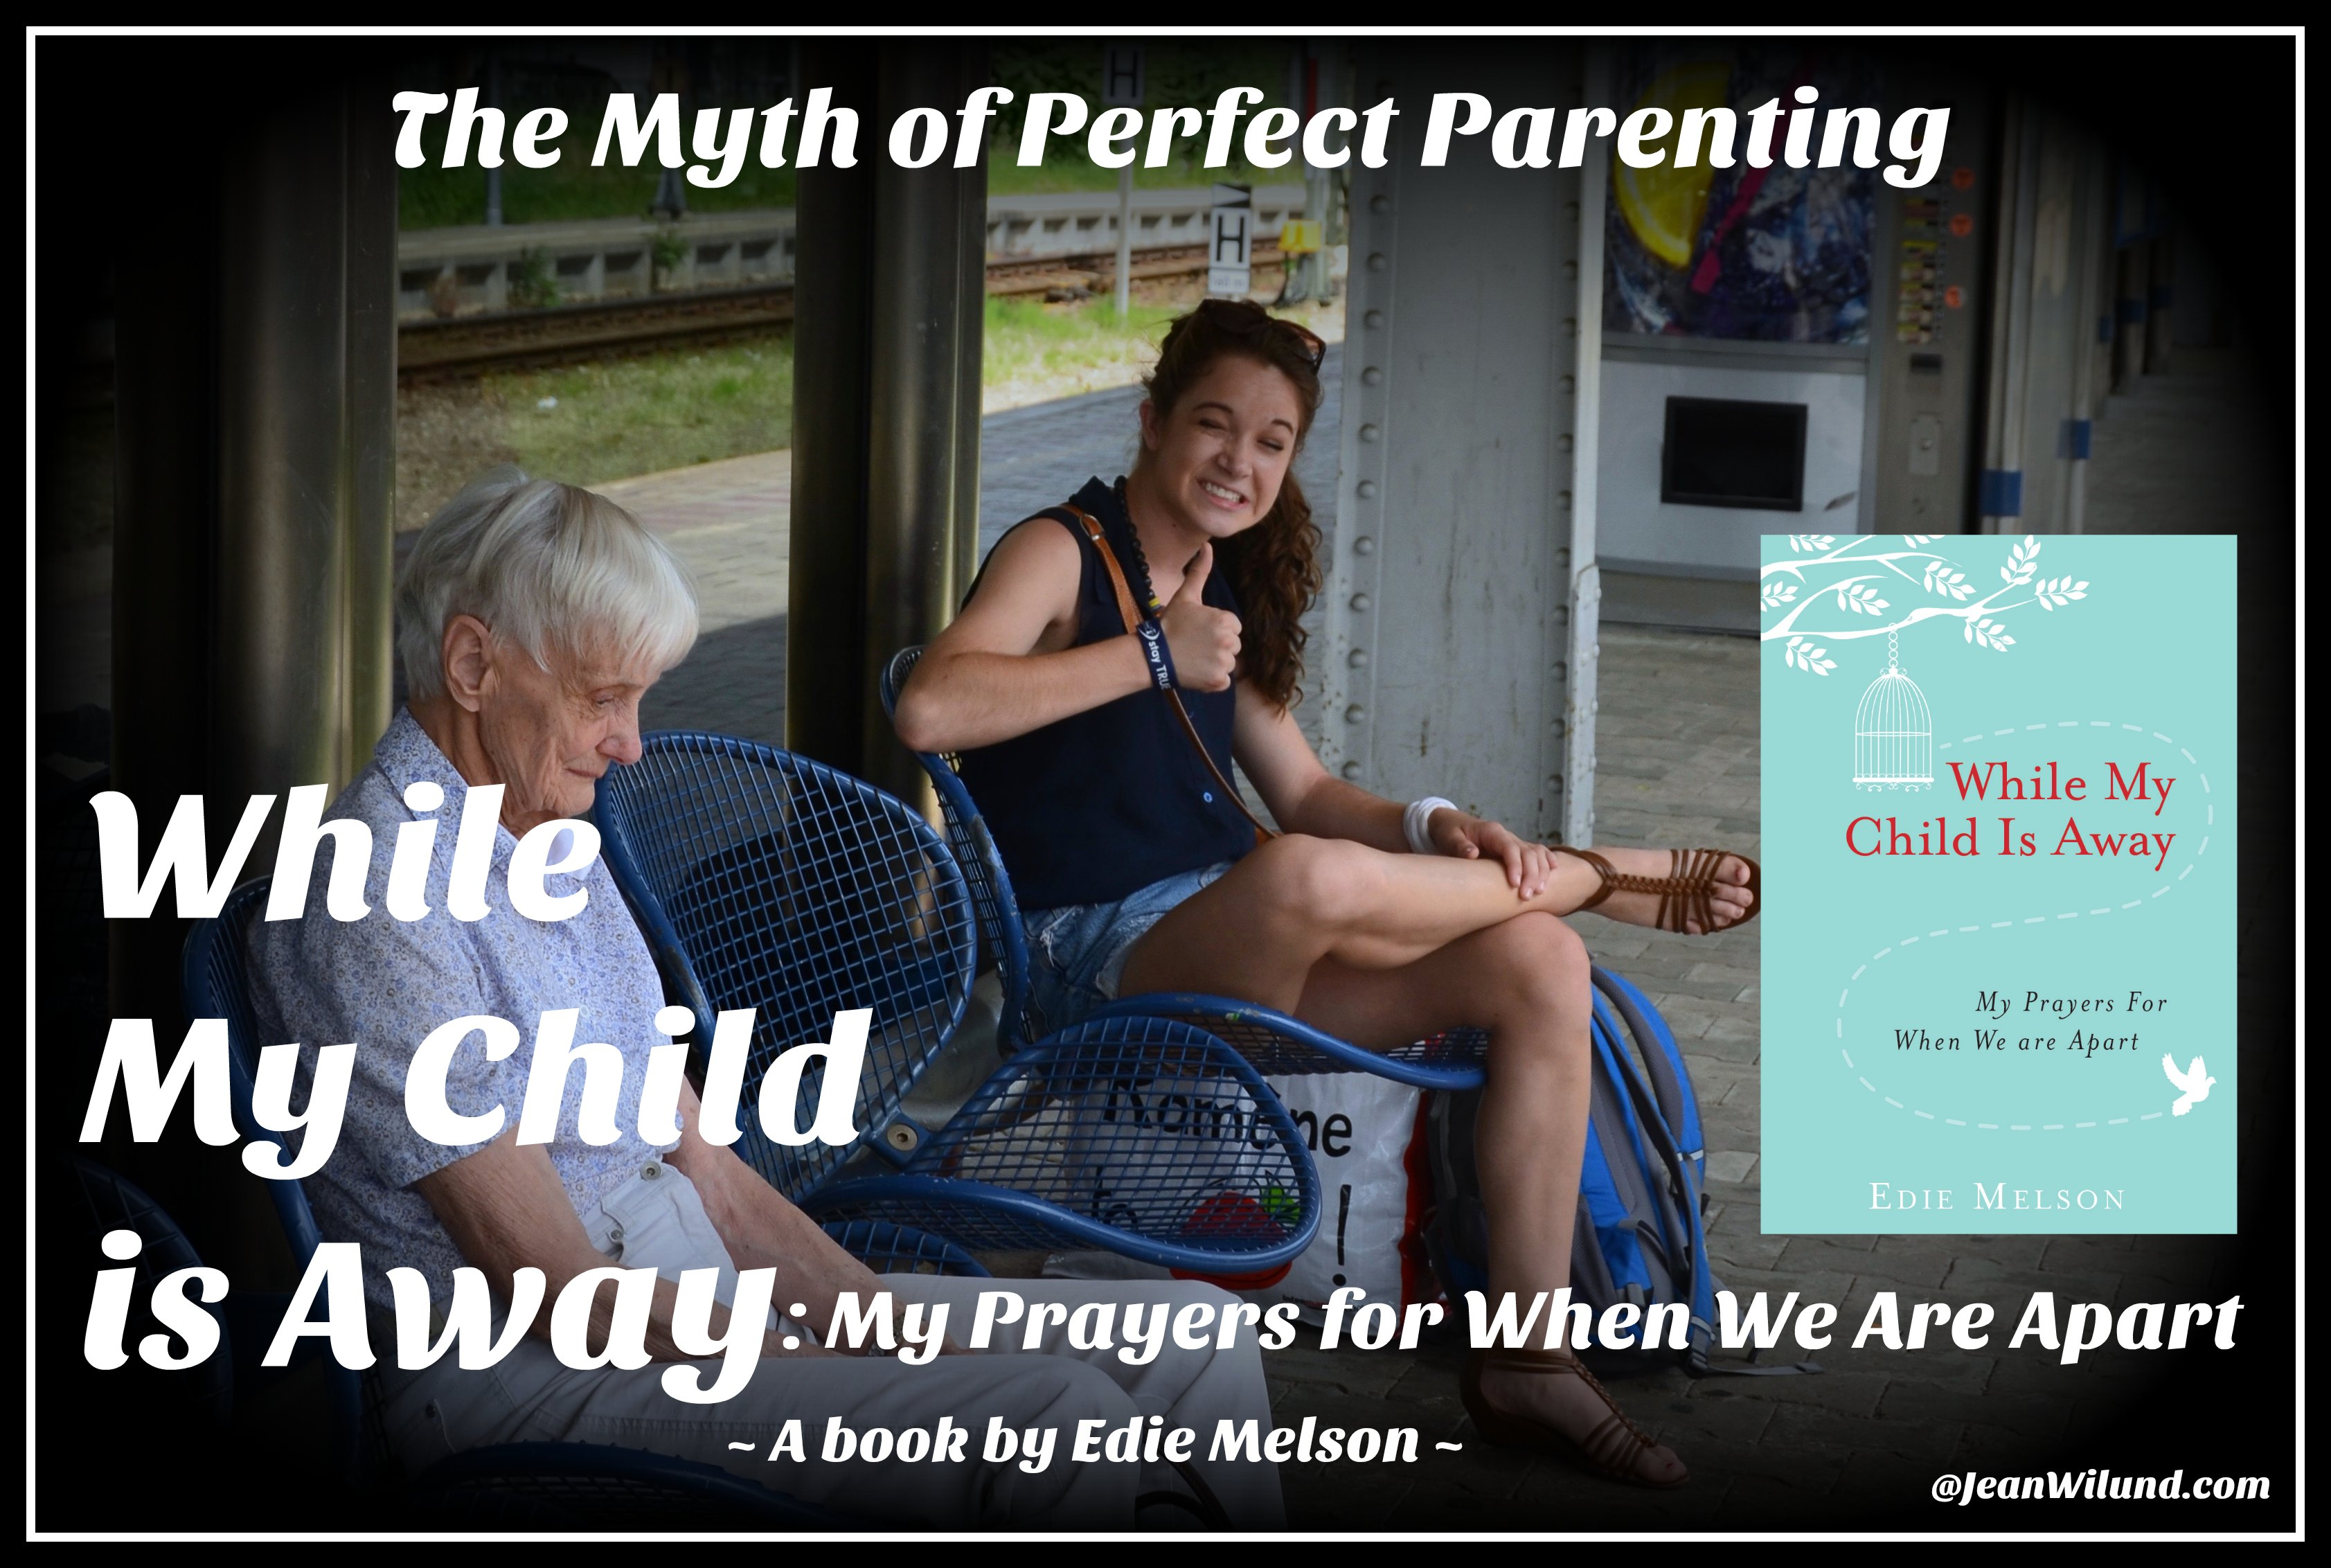 The myth of perfect parenting. Learn how best to pray while your child is away in While My Child is Away (a book by Edie Melson) Interview by Jean Wilund